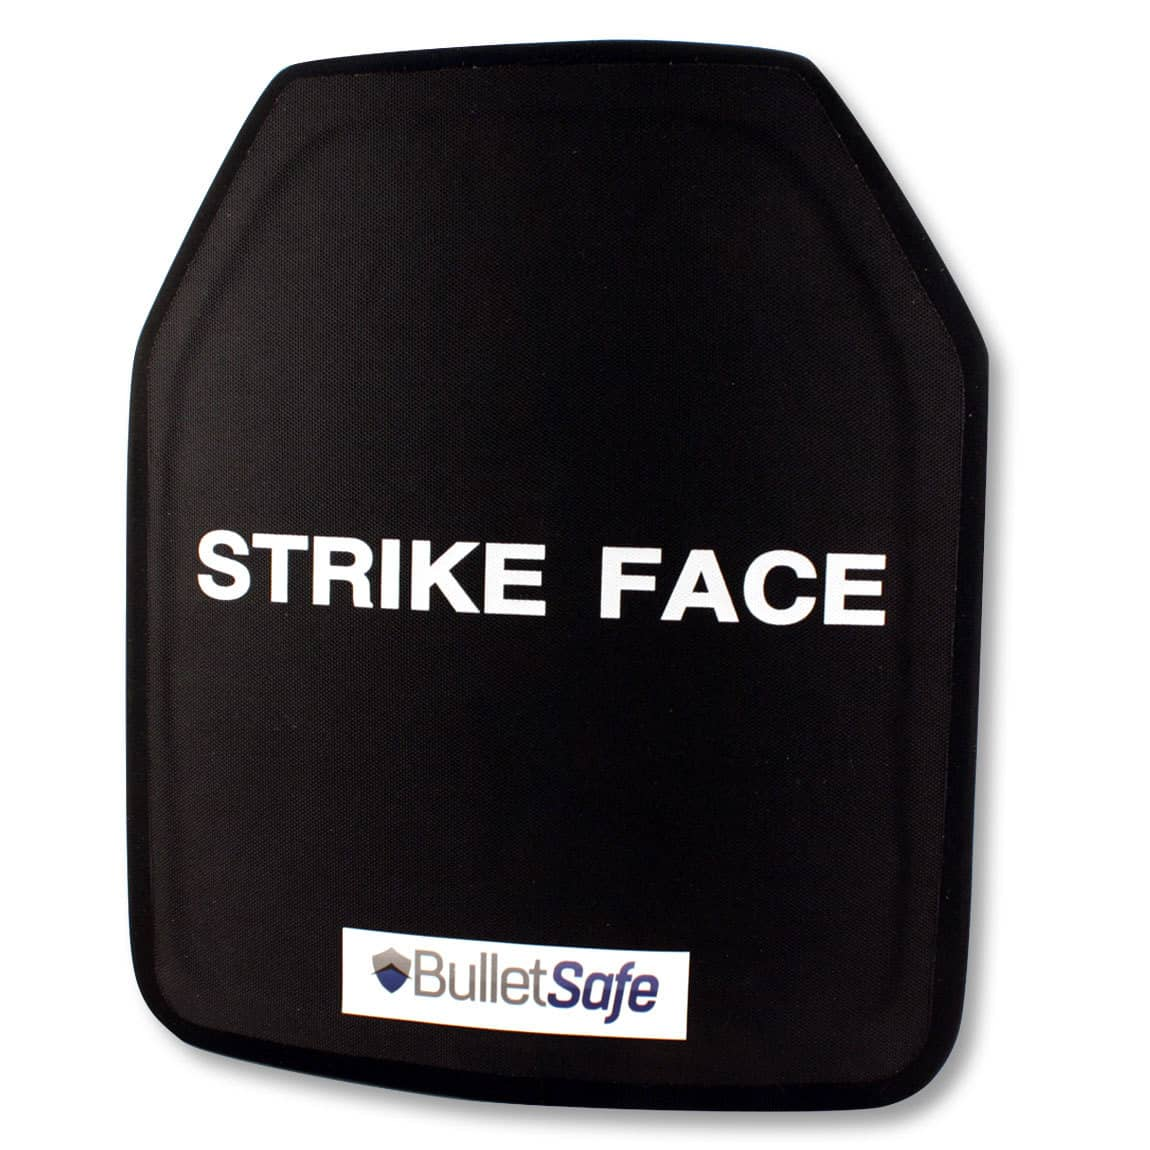 strike-face-level-iii-ballistic-plate.jpg